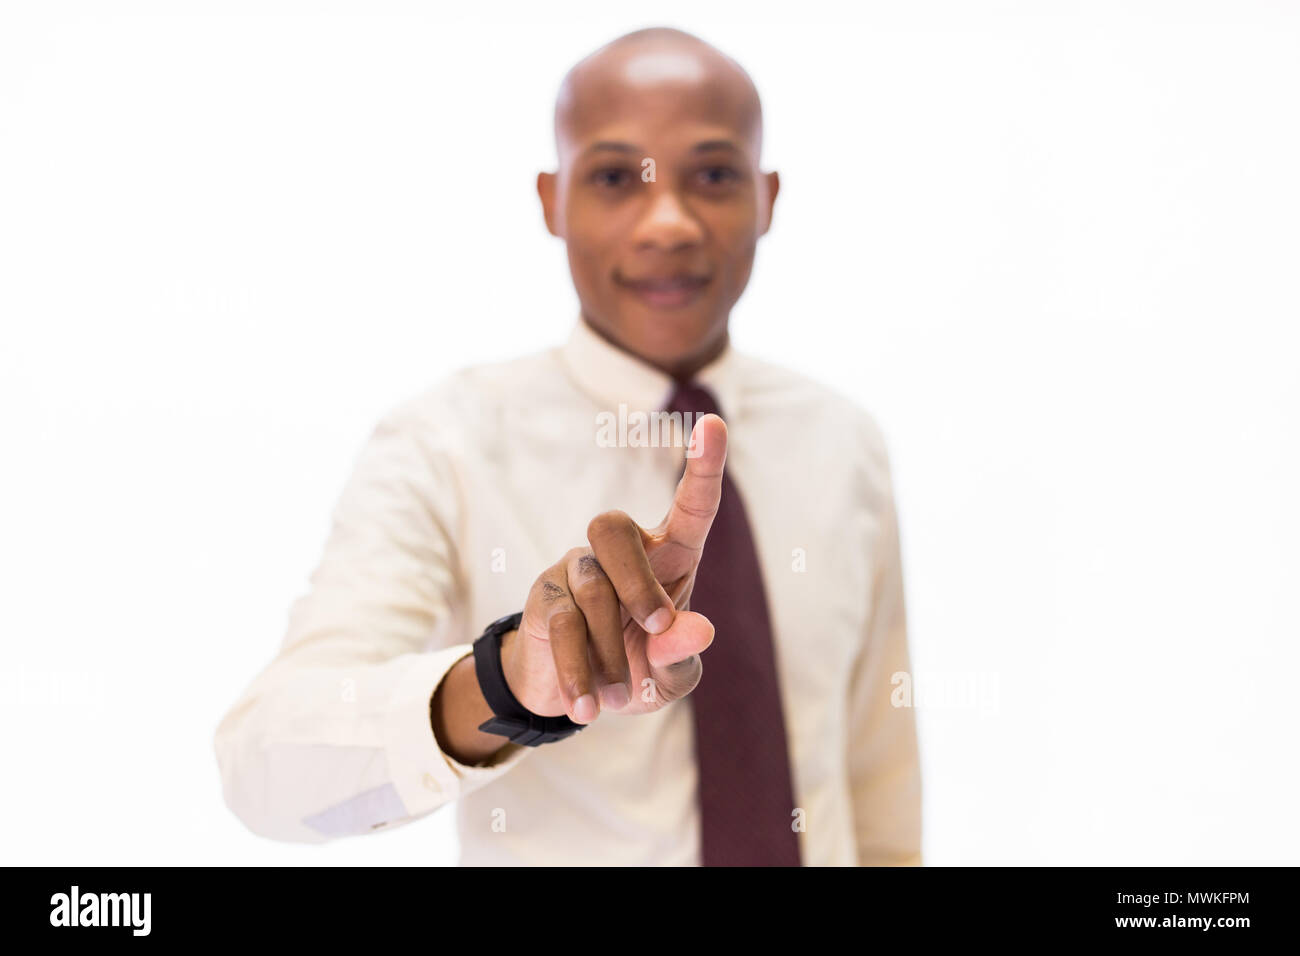 6d37a377533 Attractive African American man wearing formal wear with tie ...